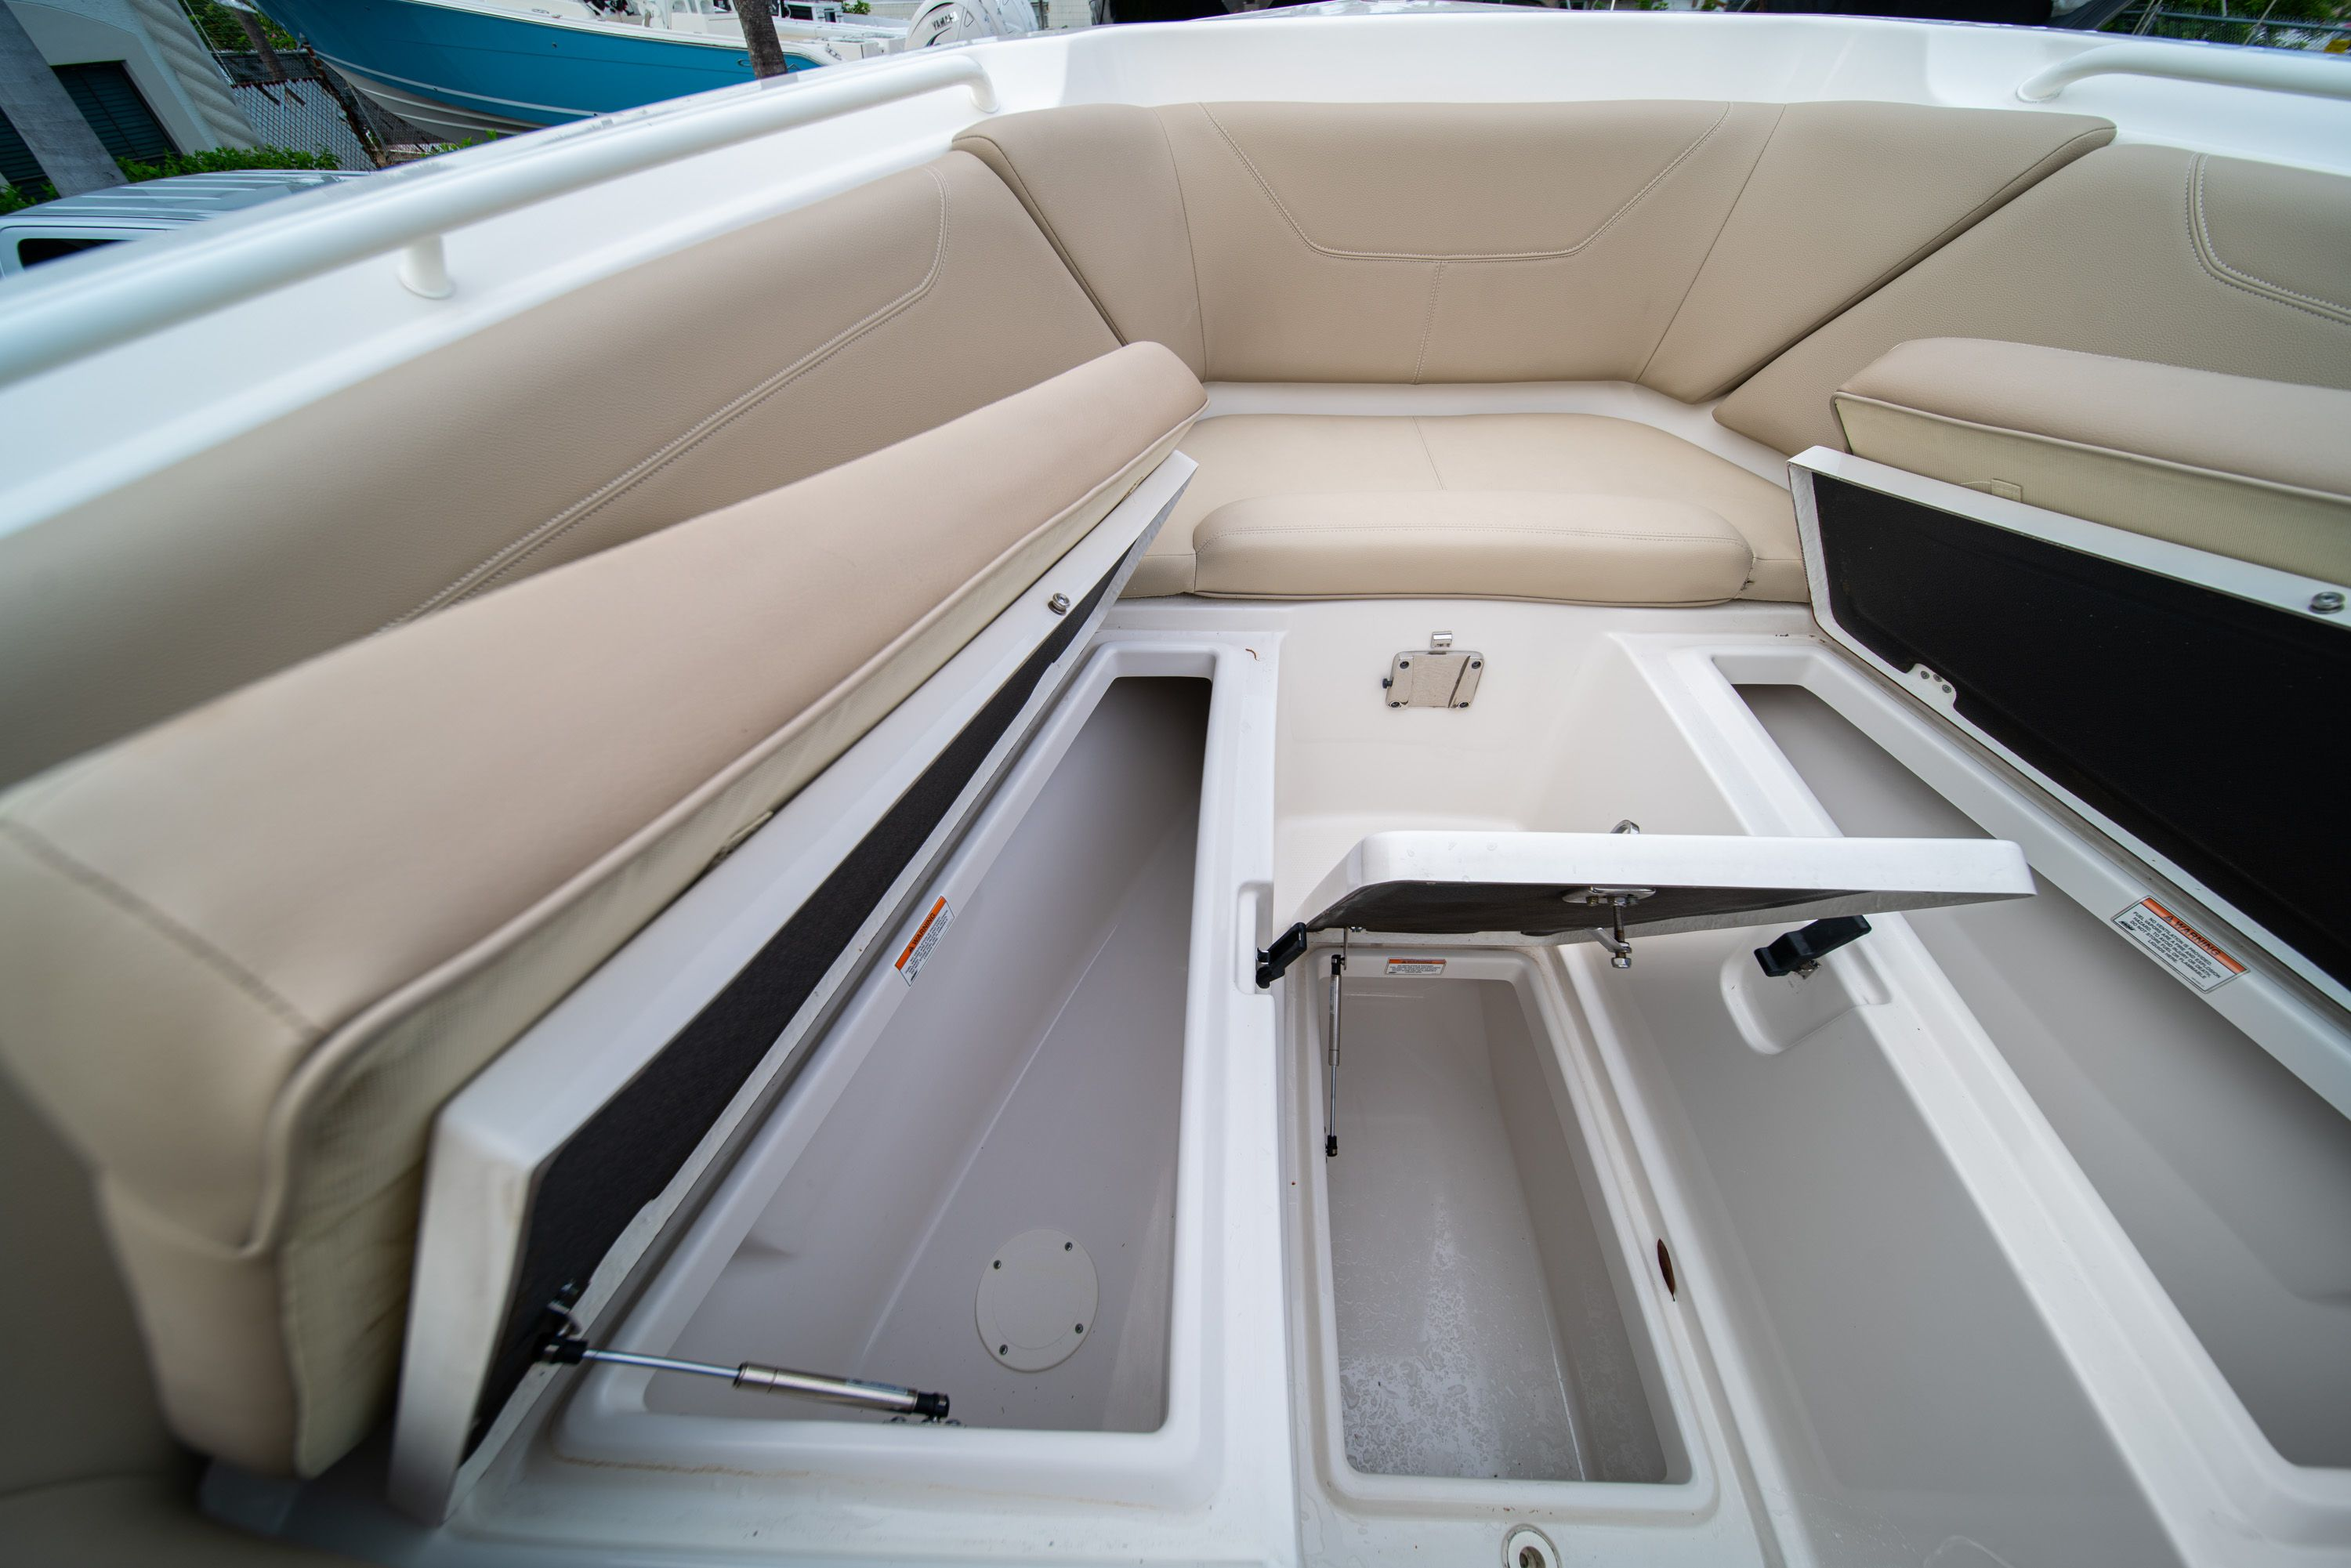 Thumbnail 64 for Used 2017 Sailfish 275 Dual Console boat for sale in West Palm Beach, FL